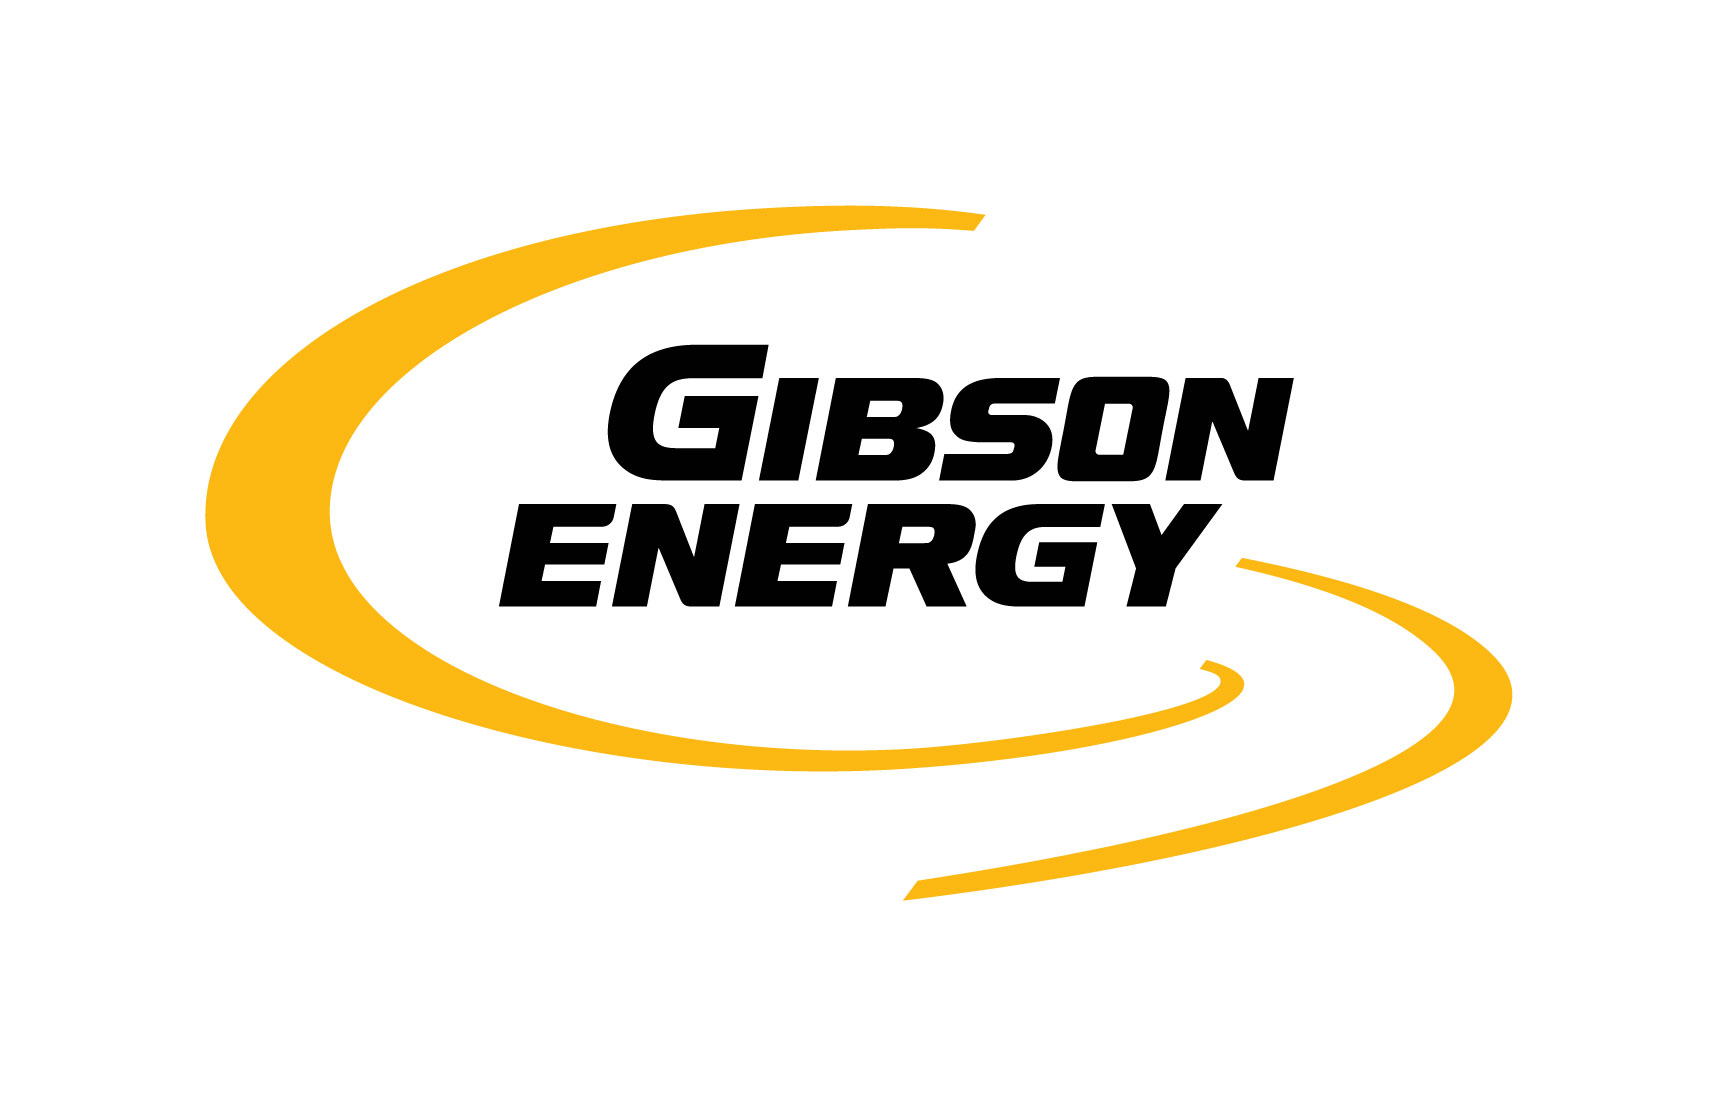 Gibson Energy Announces $1 Million Donation to Trellis Towards Youth Mental Health Support